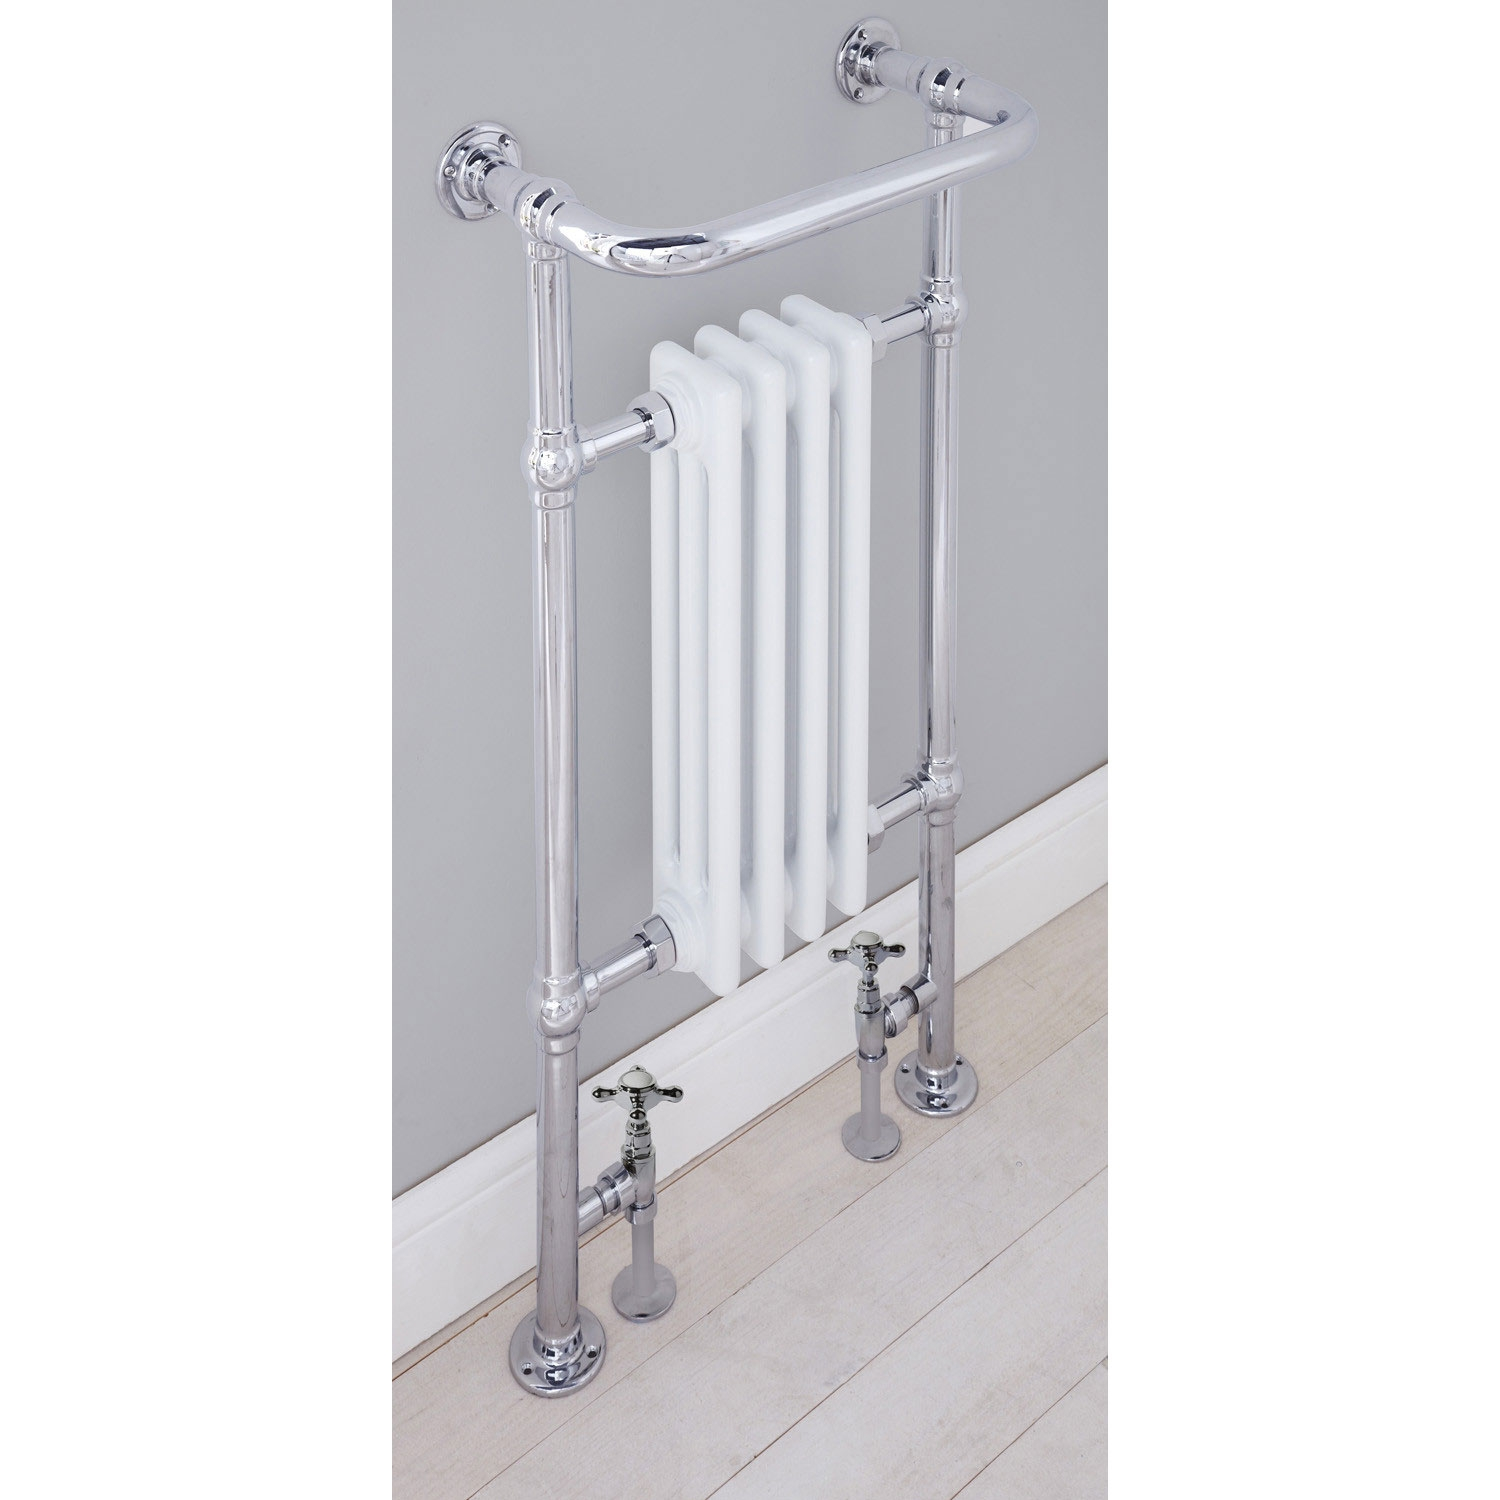 Verona Radley Traditional Heated Towel Rail 963mm H x 493mm W Chrome-1